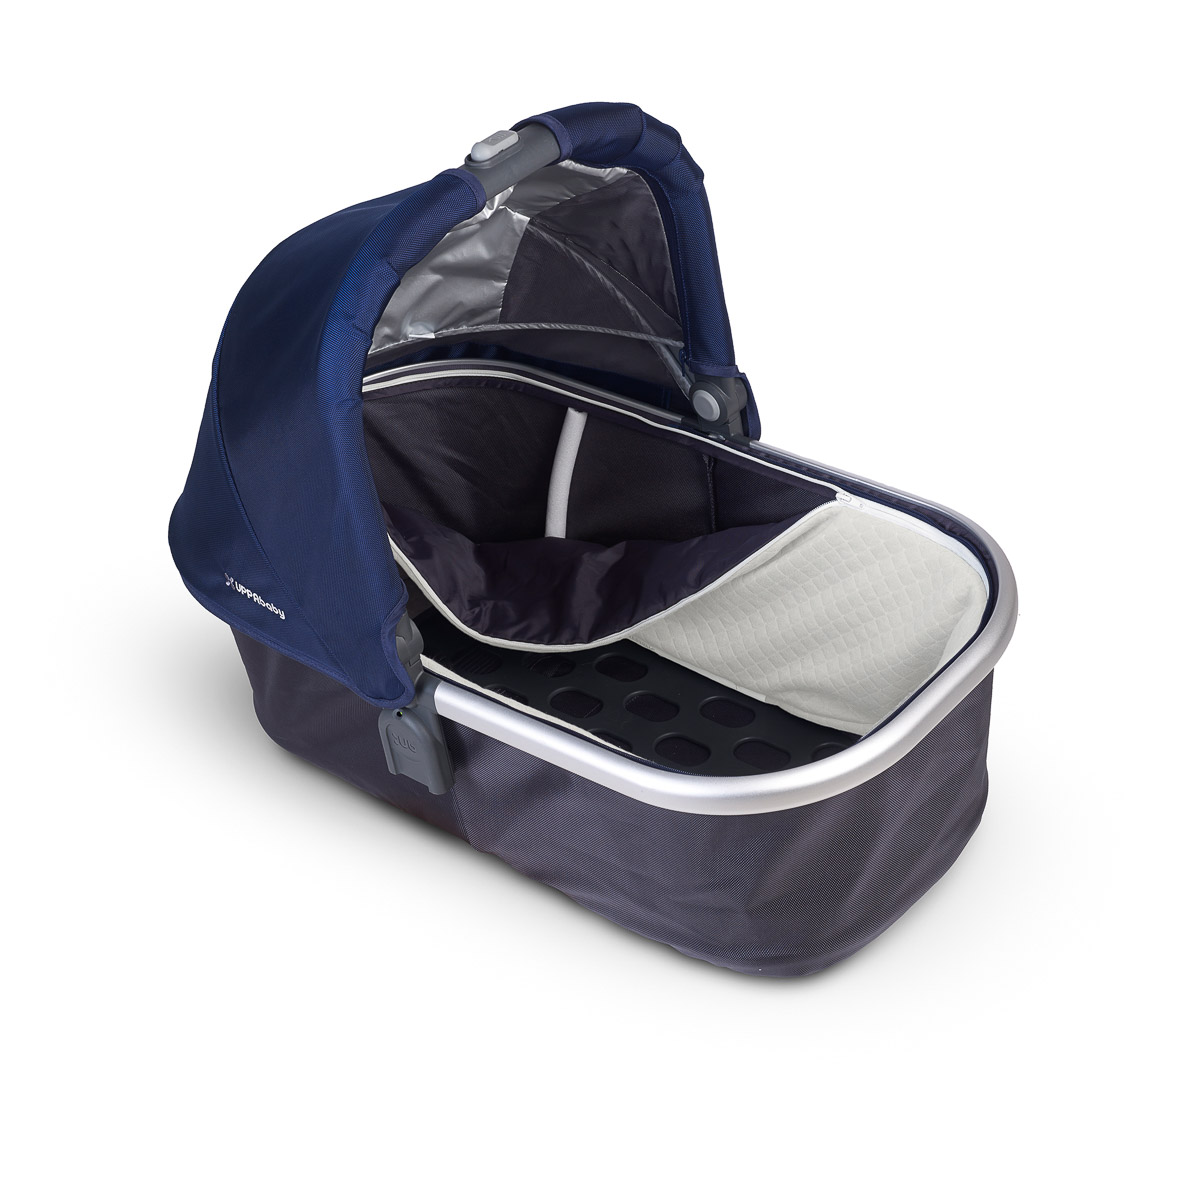 1opt1-1-UB_Bassinet_ZipLiner